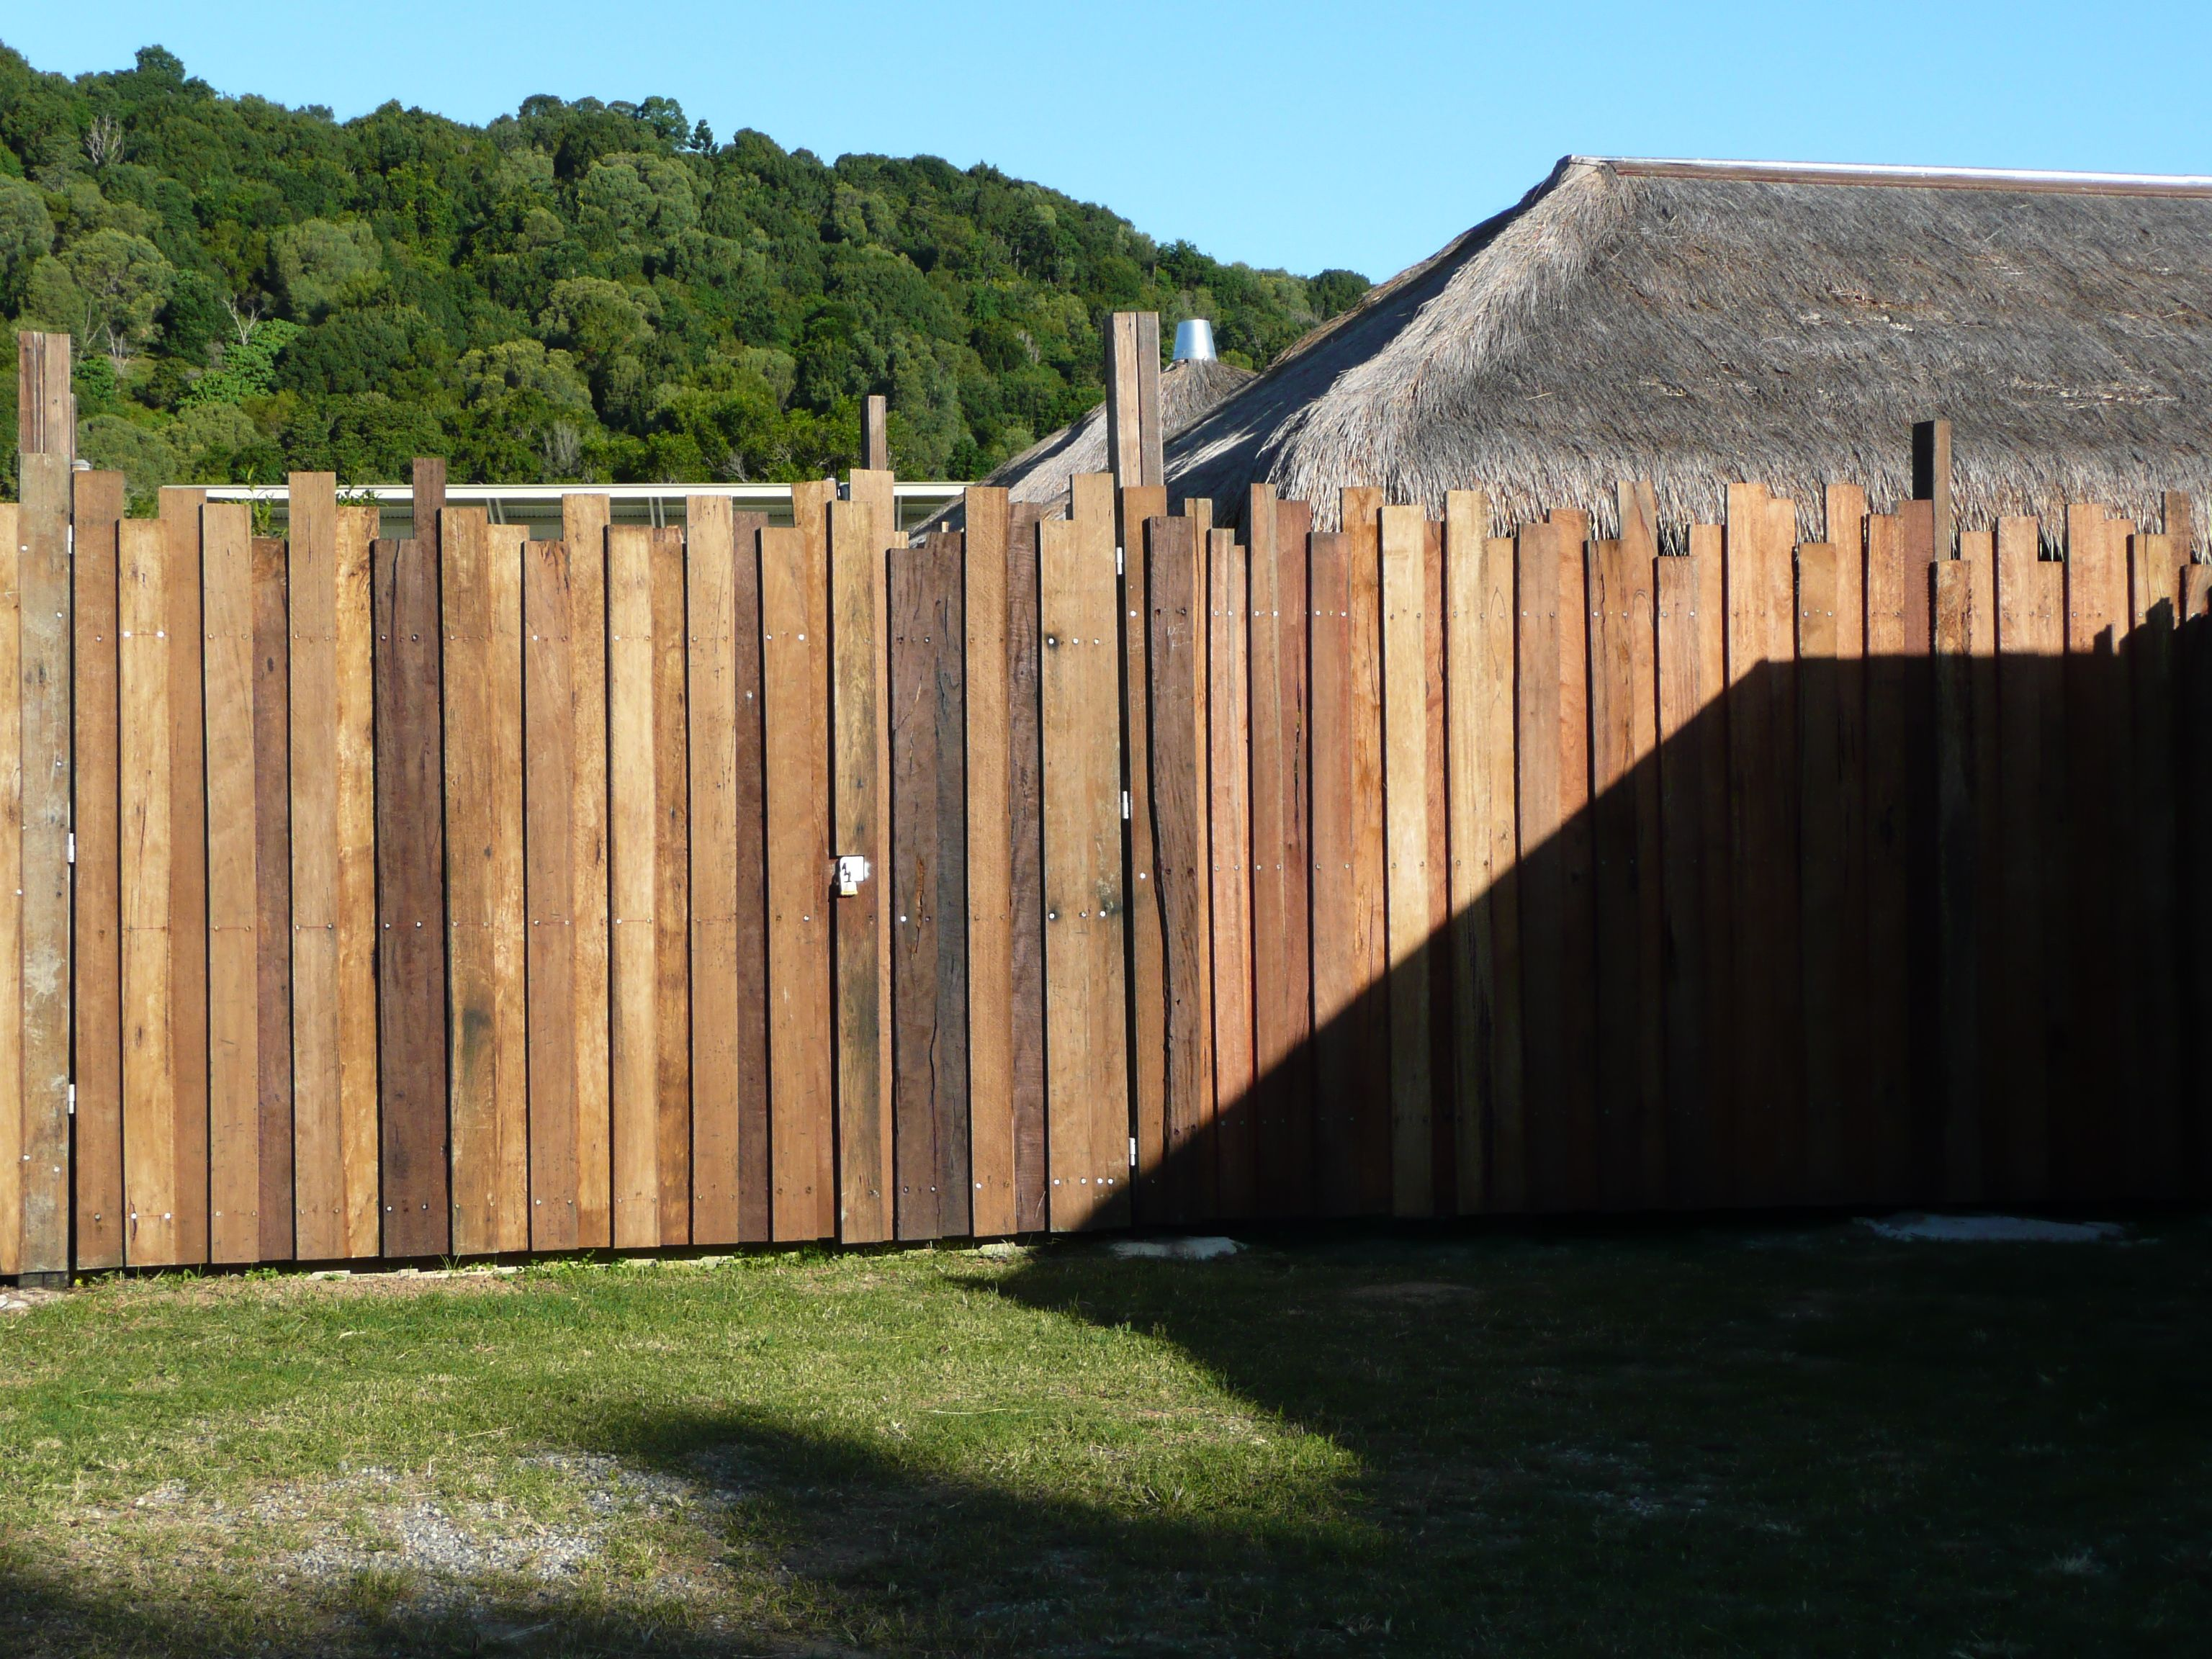 Timber fence with different height boards 12 home garden timber fence with different height boards baanklon Gallery